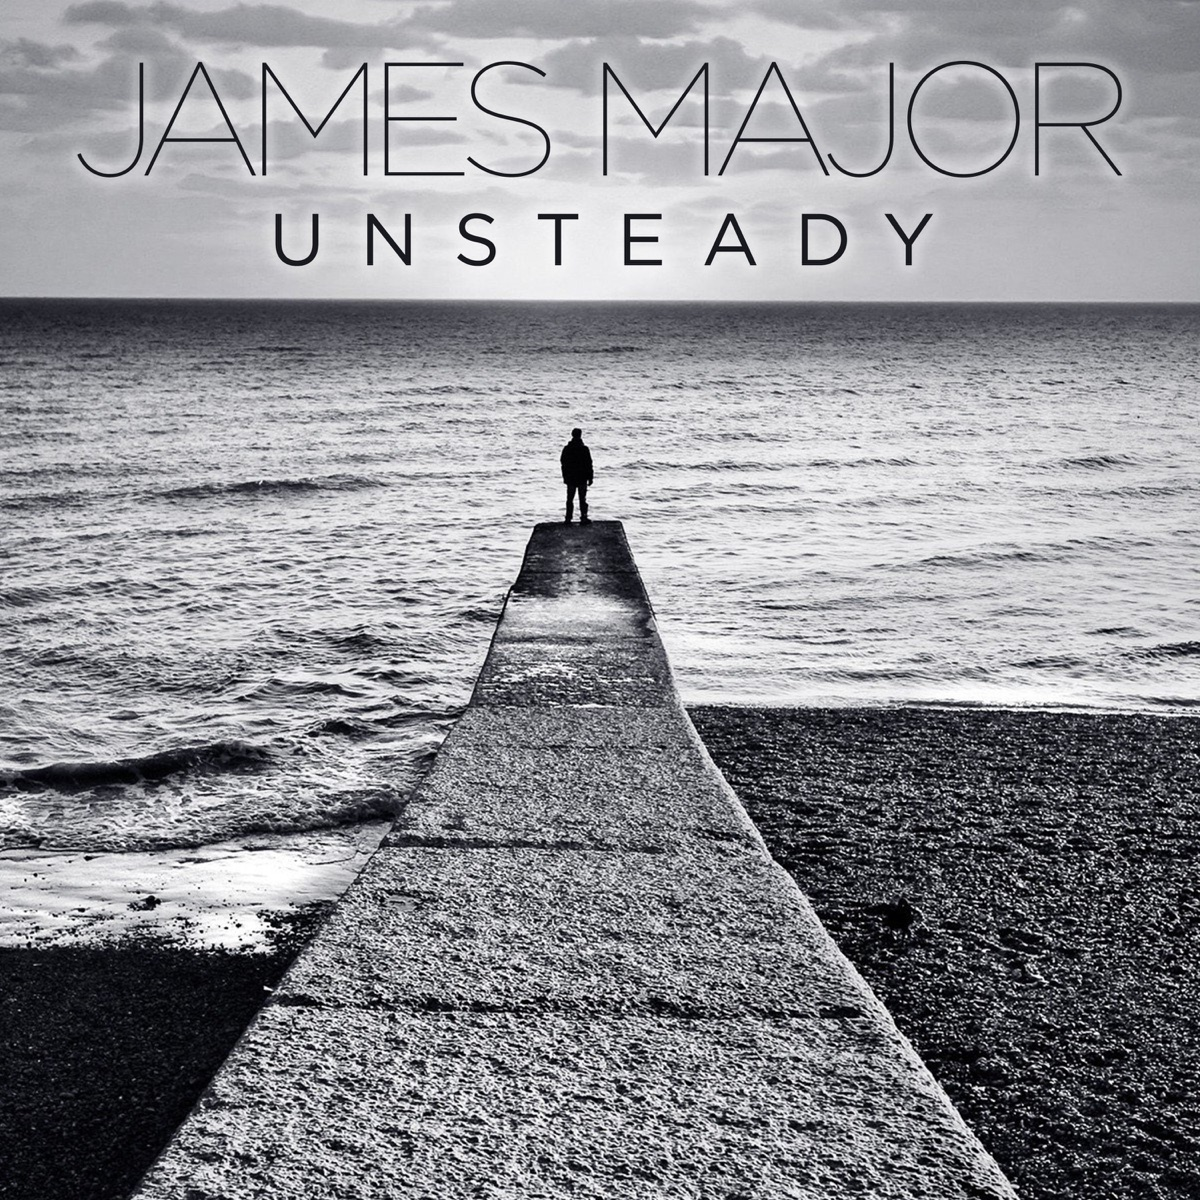 Unsteady - Single Album Cover by James Major